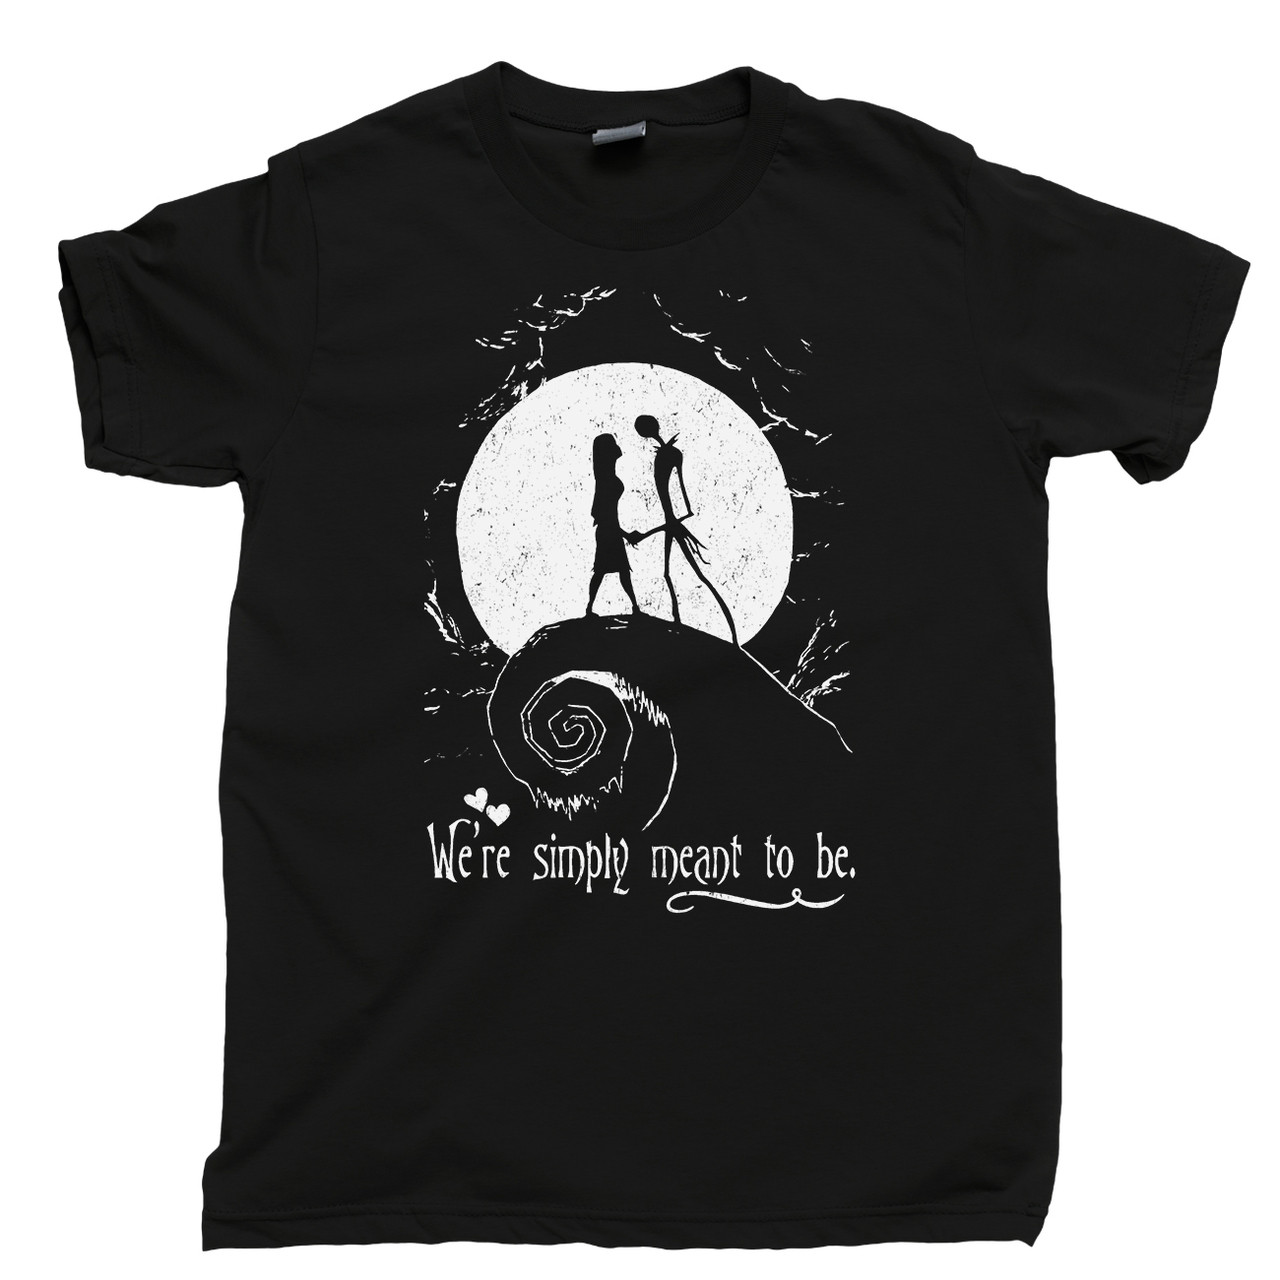 Cool Nightmare Before Christmas Gifts: Nightmare Before Christmas T Shirt